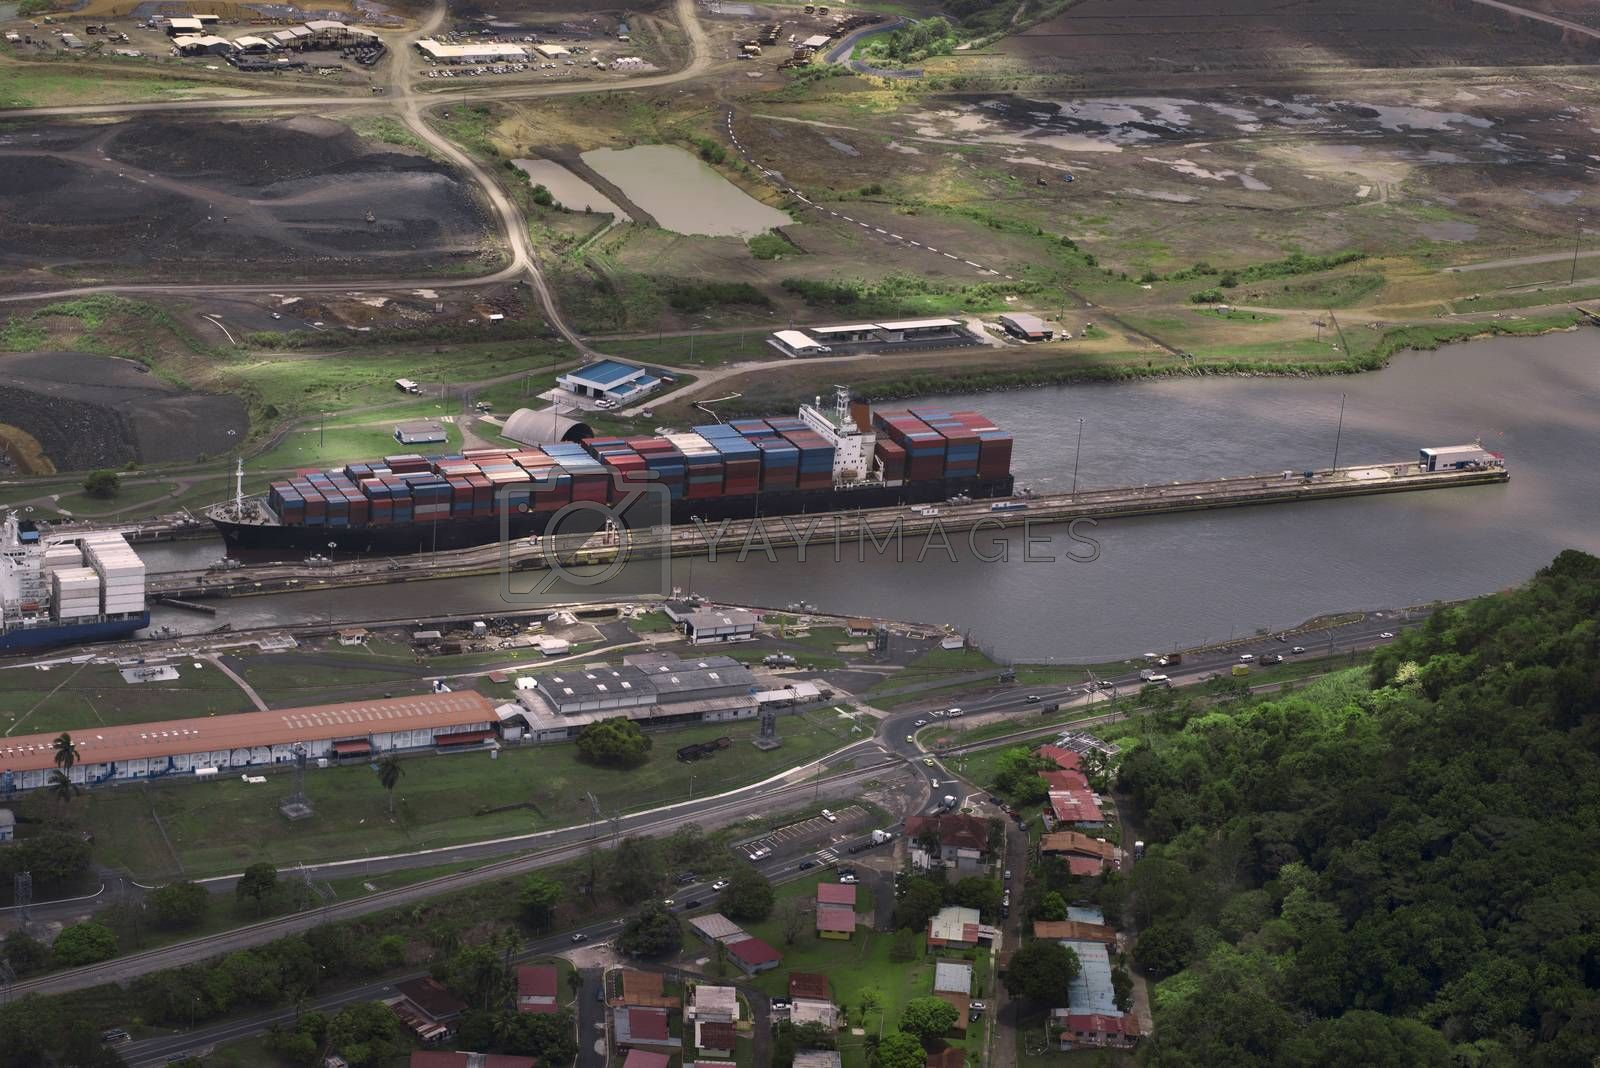 Cargo Ships At Miraflores Locks In Panama Canal, Panama